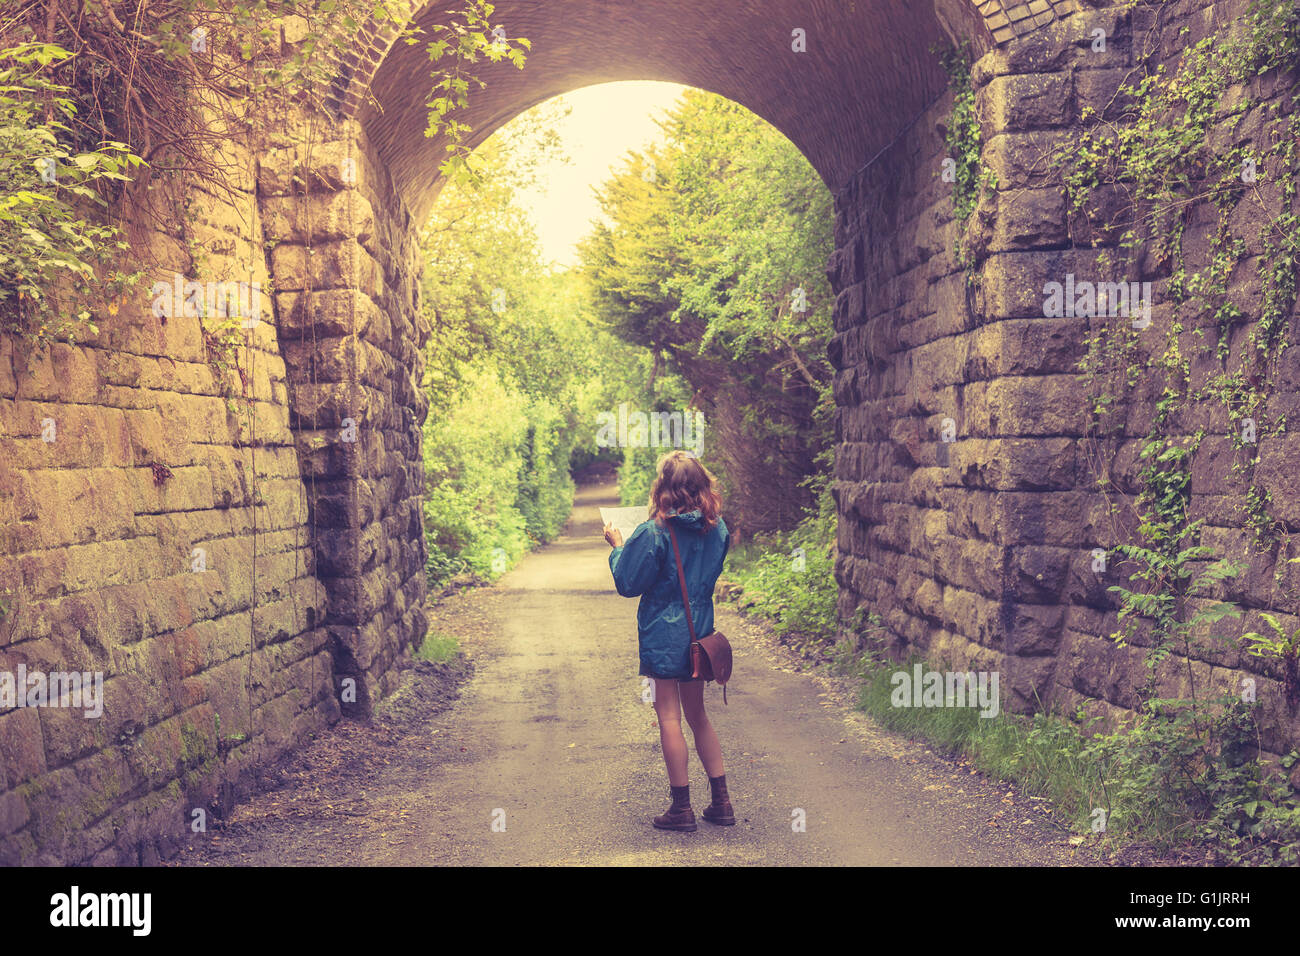 A young woman is lost in a forest below a railway bridge and is studying a map - Stock Image